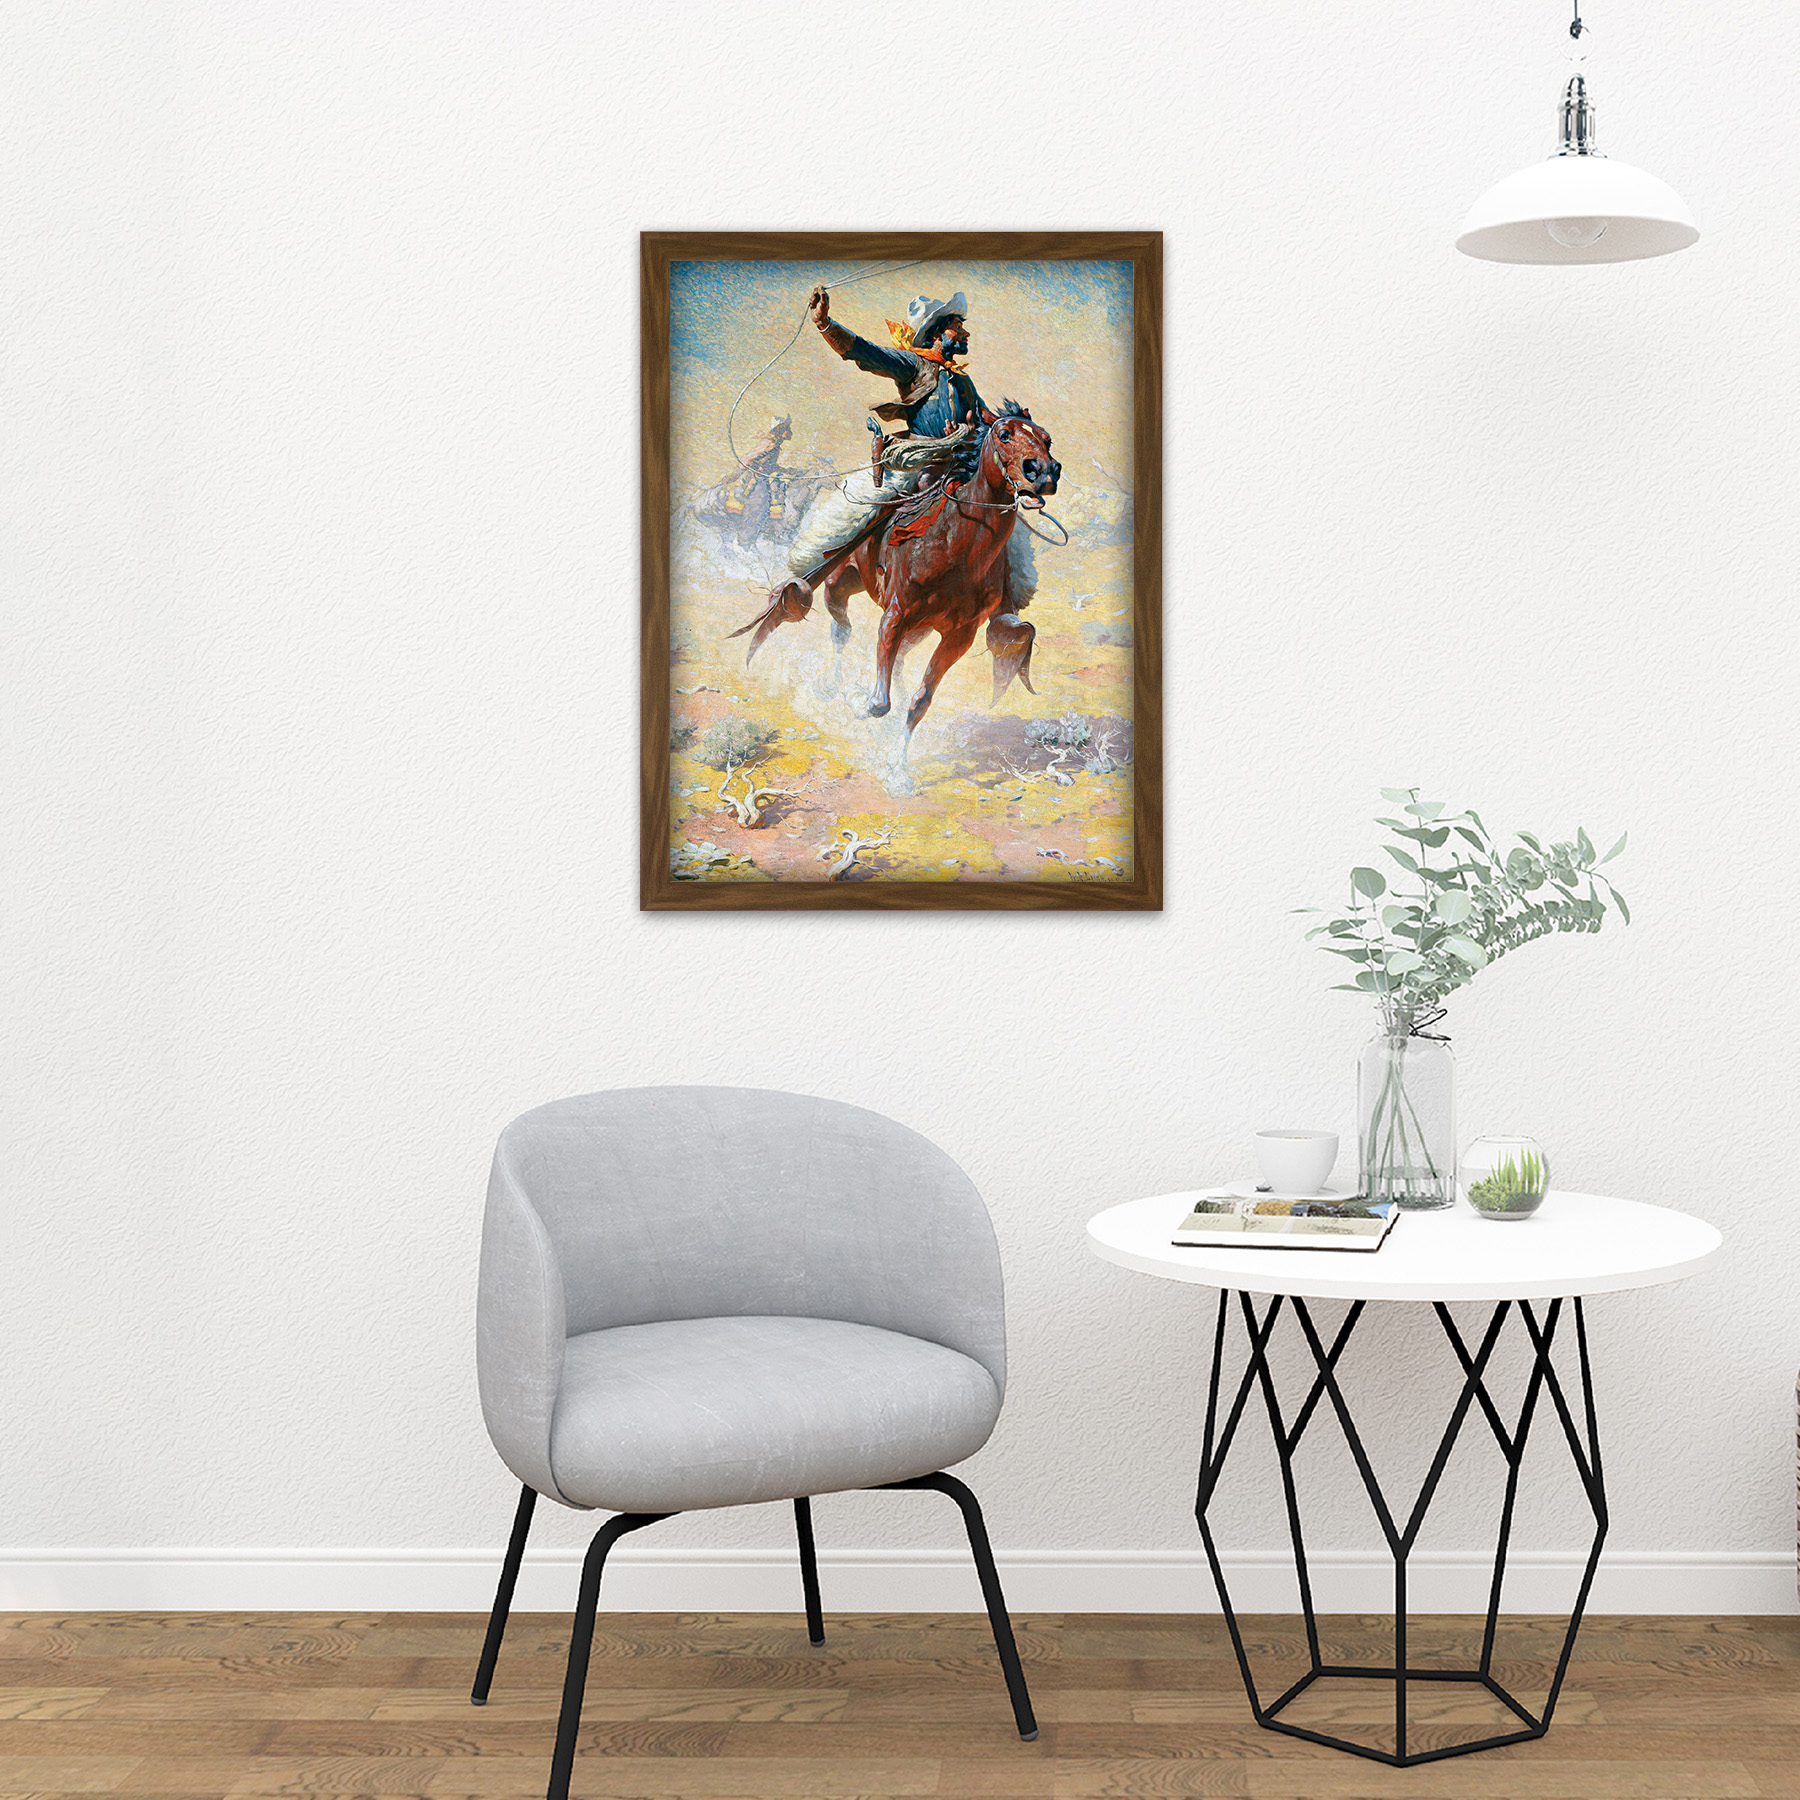 Leigh-The-Roping-Cowboy-Lasso-Horse-Painting-Large-Framed-Art-Print thumbnail 13